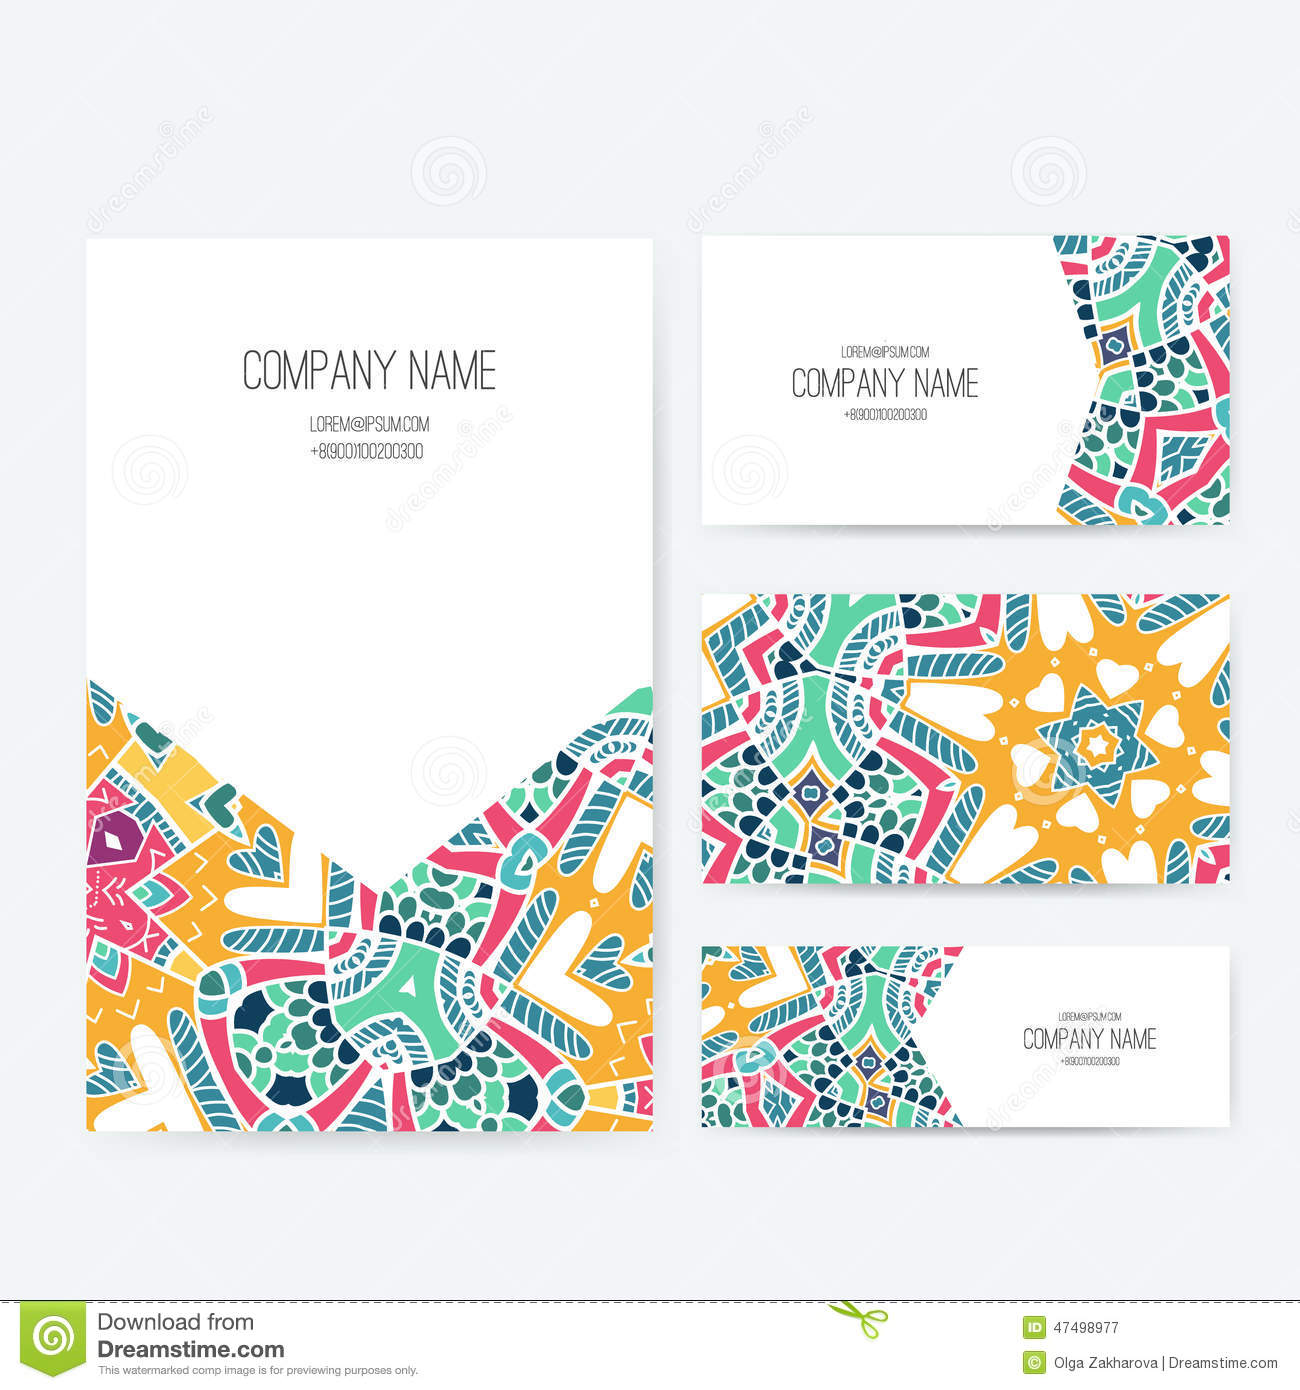 Save The Date Invitation Templates is nice invitation layout